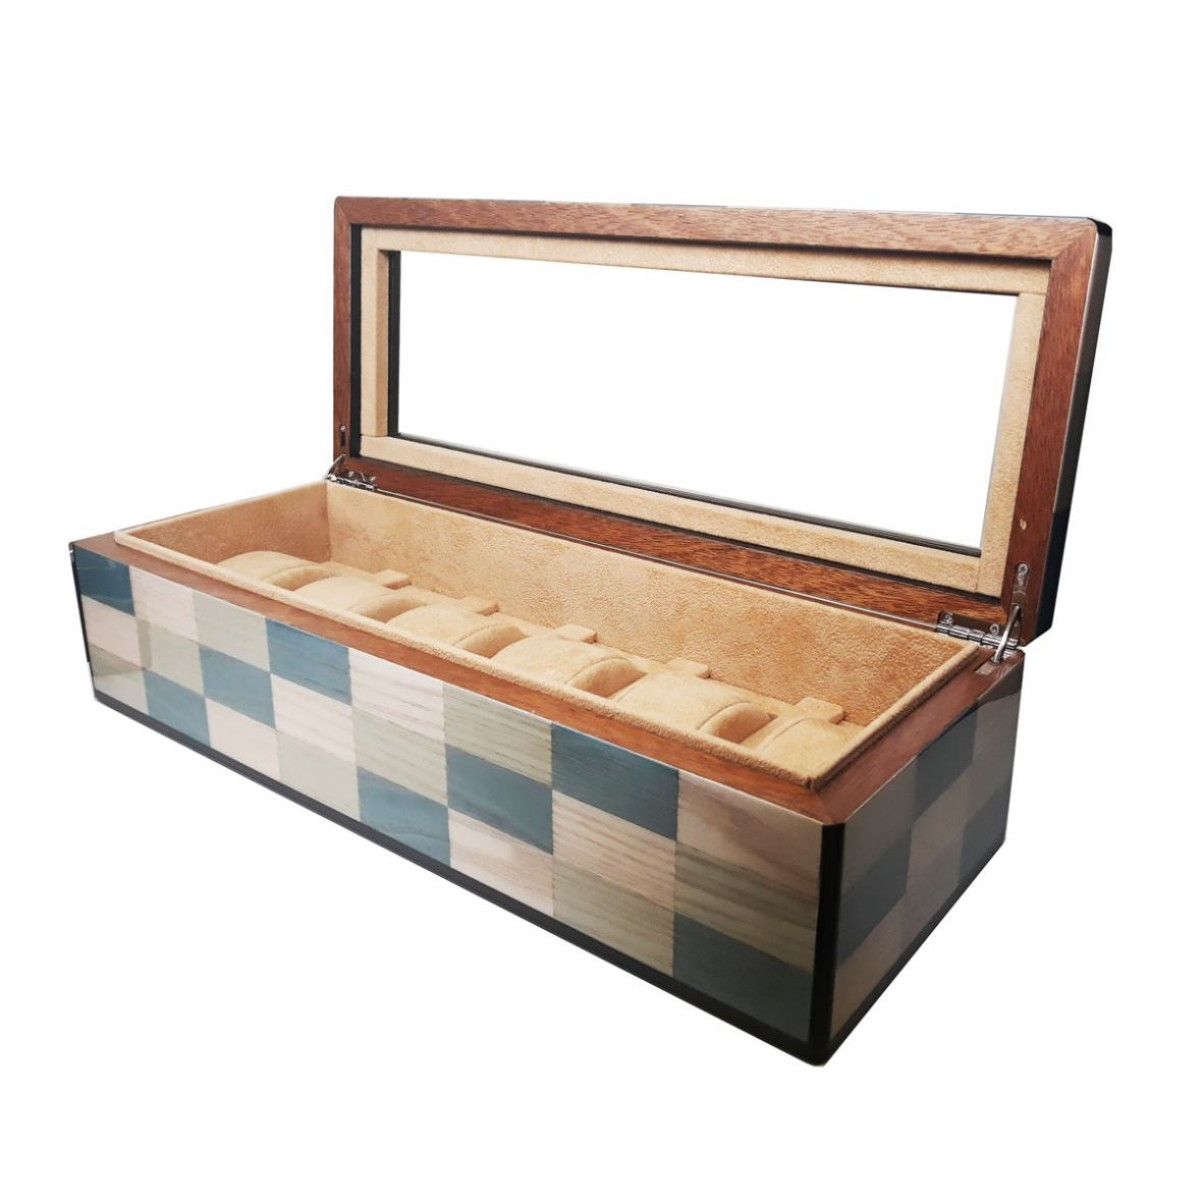 Watch Case - Laguna wood - 6 seats